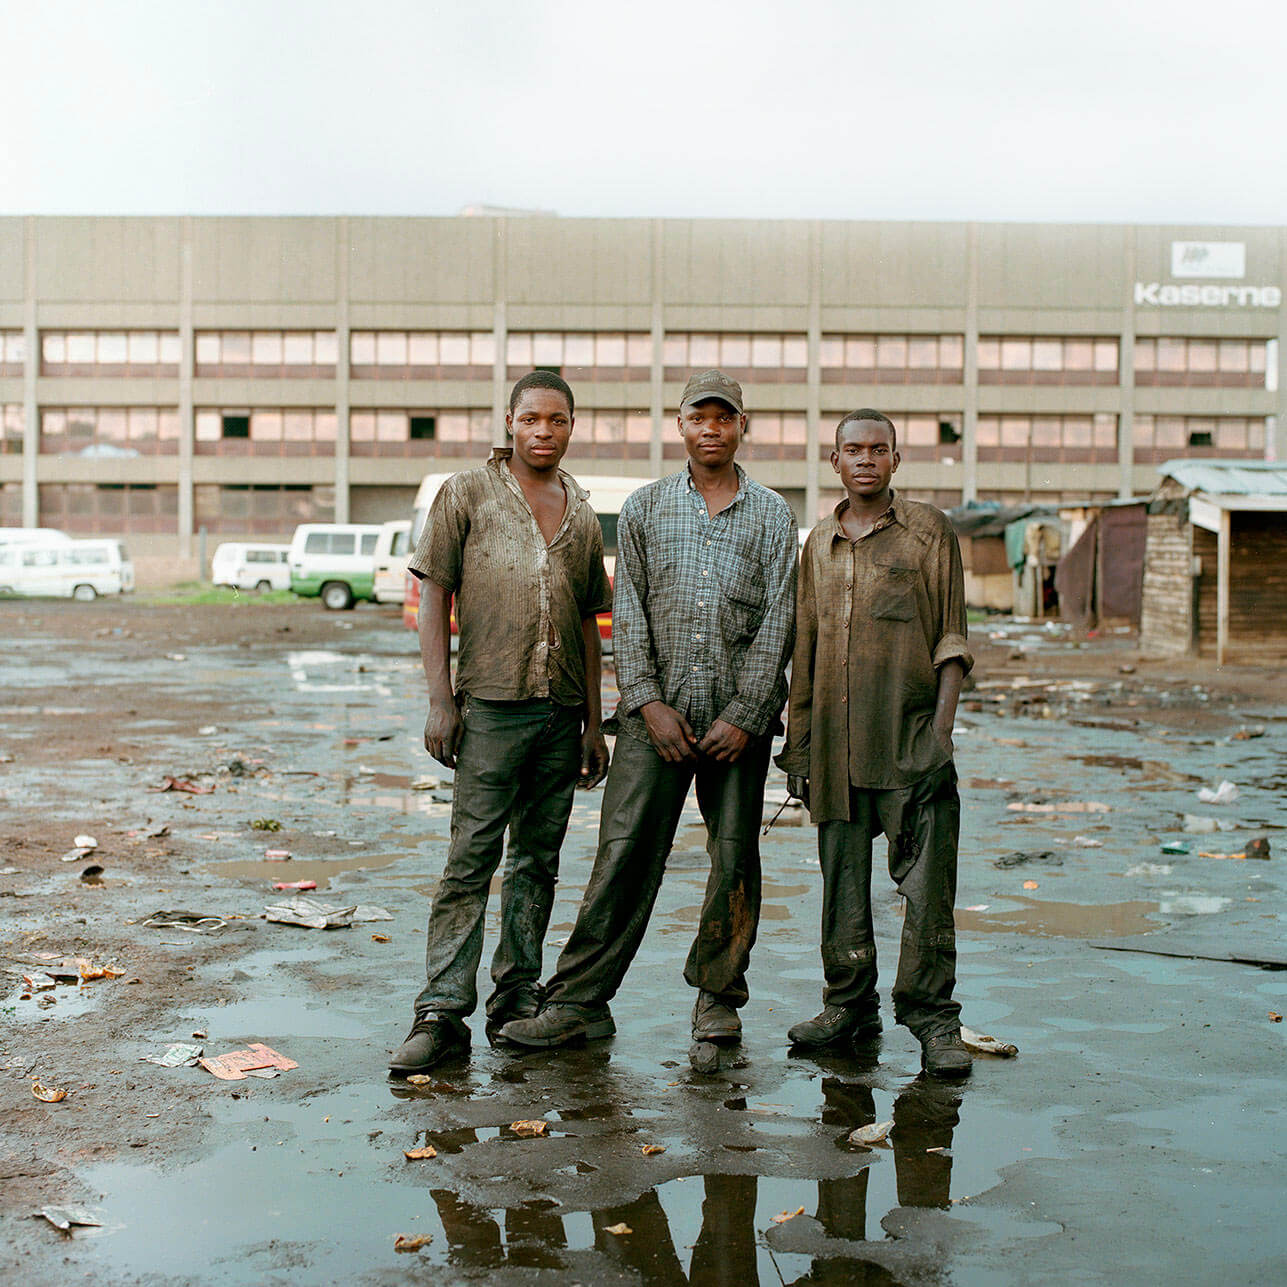 Claudio Rasano SOUTH AFRICA EVERYONE LIVE IN THE SAME PLACE LIKE BEFORE portrait of three men in dirty clothes